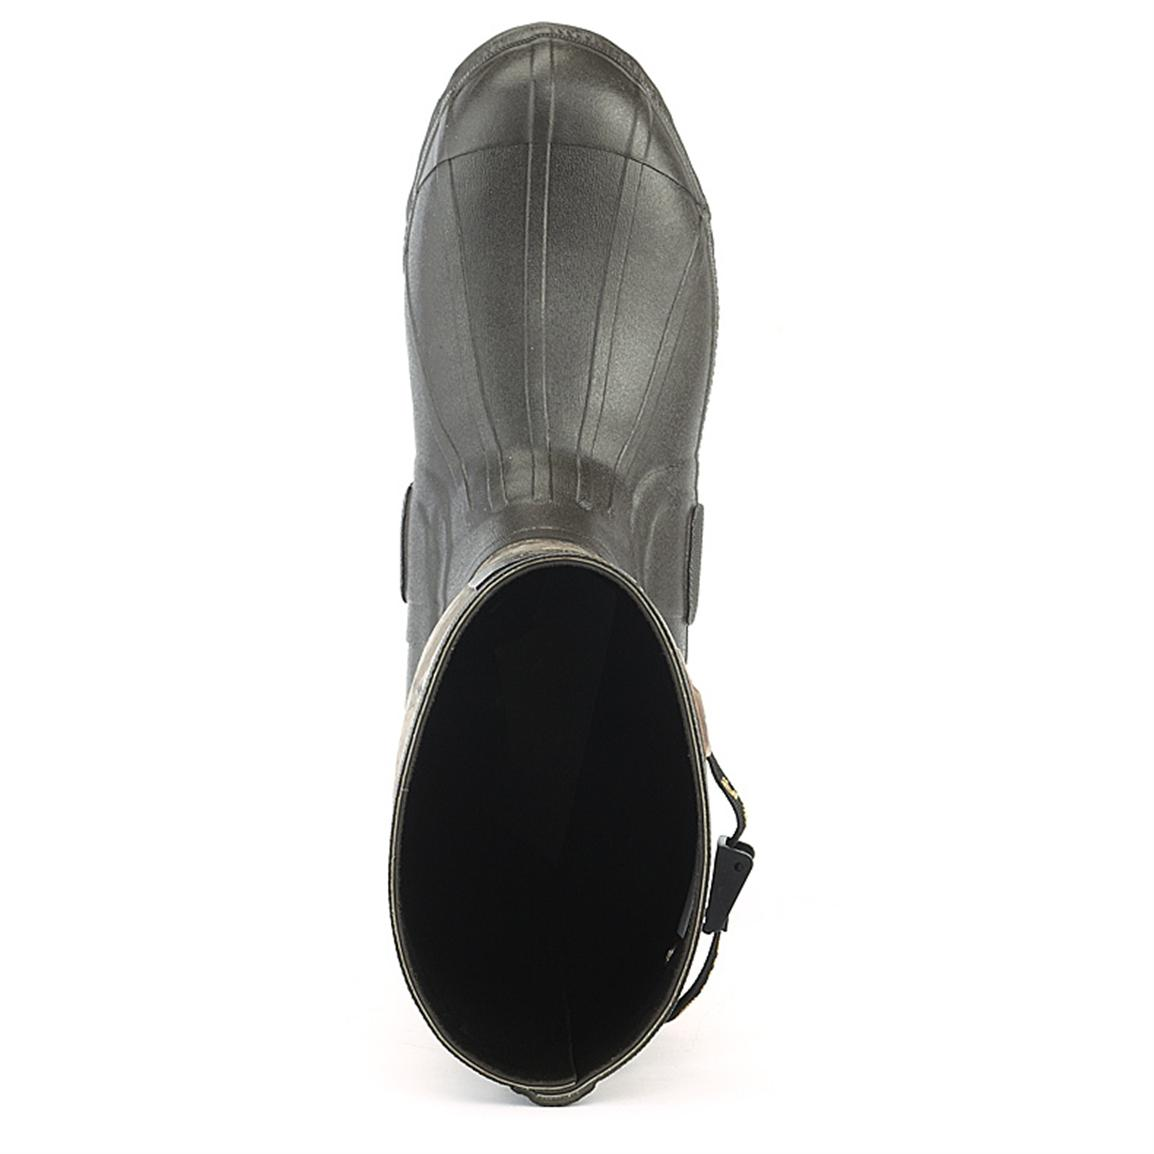 Removable padded insole